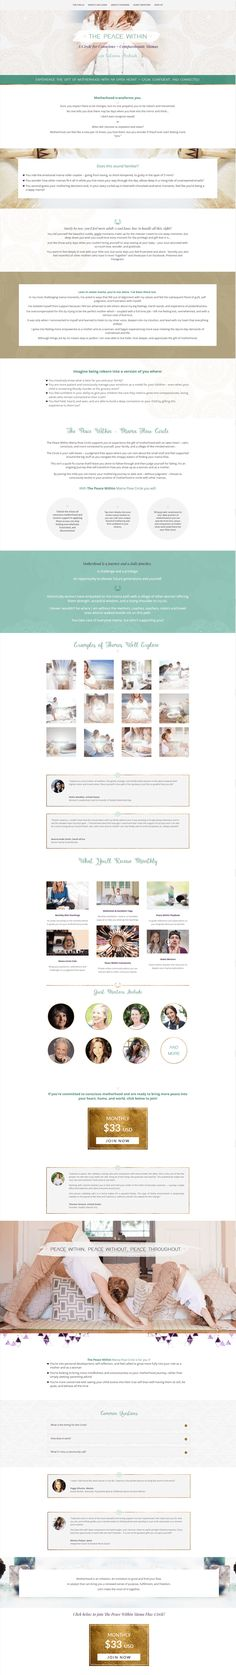 This is a beautiful sales page design Page Design, Ads, Website, Inspiration, Beautiful, Instagram, Design Web, Fishing Line, Biblical Inspiration